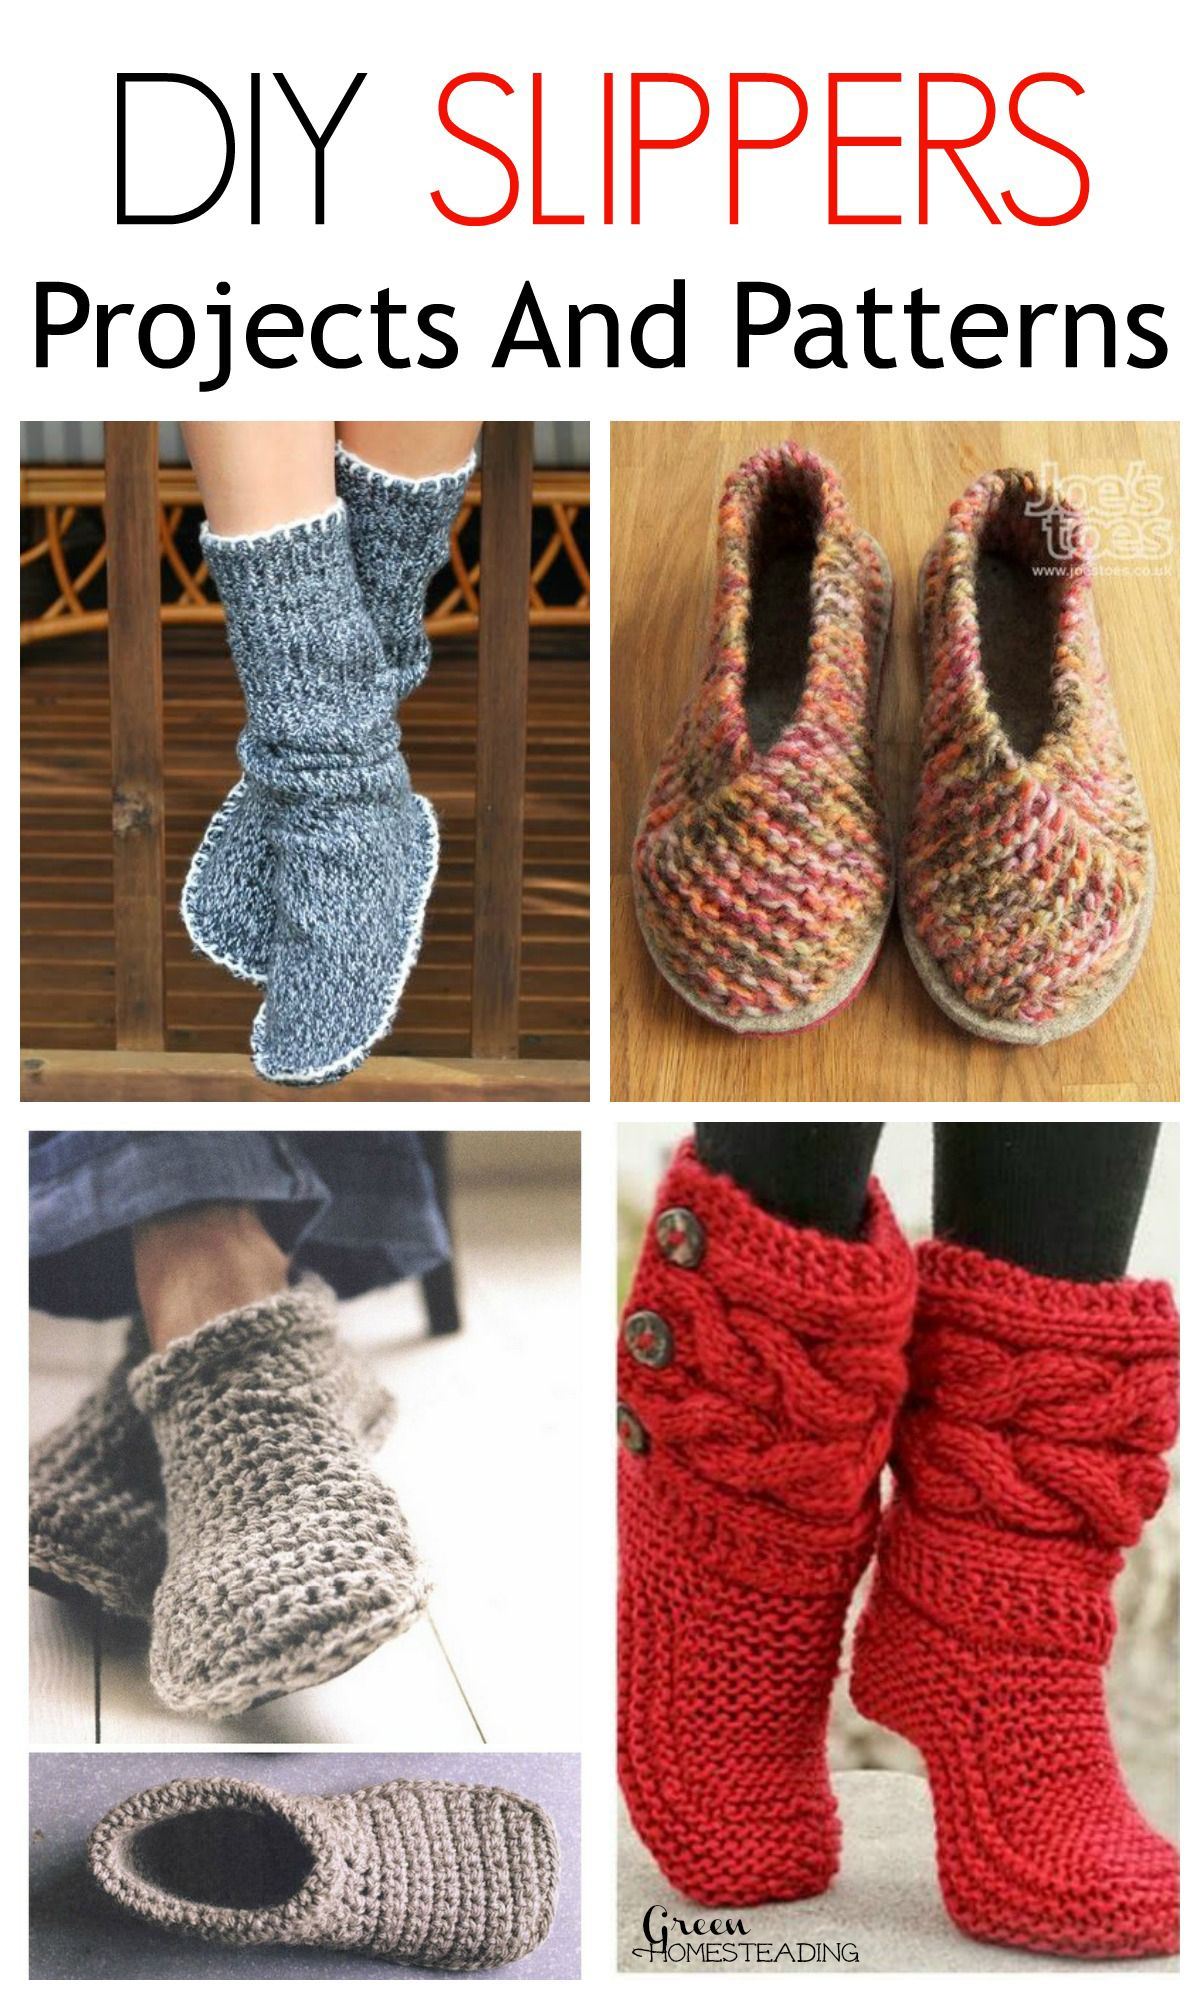 6 Cozy Diy Slippers Projects And Patterns